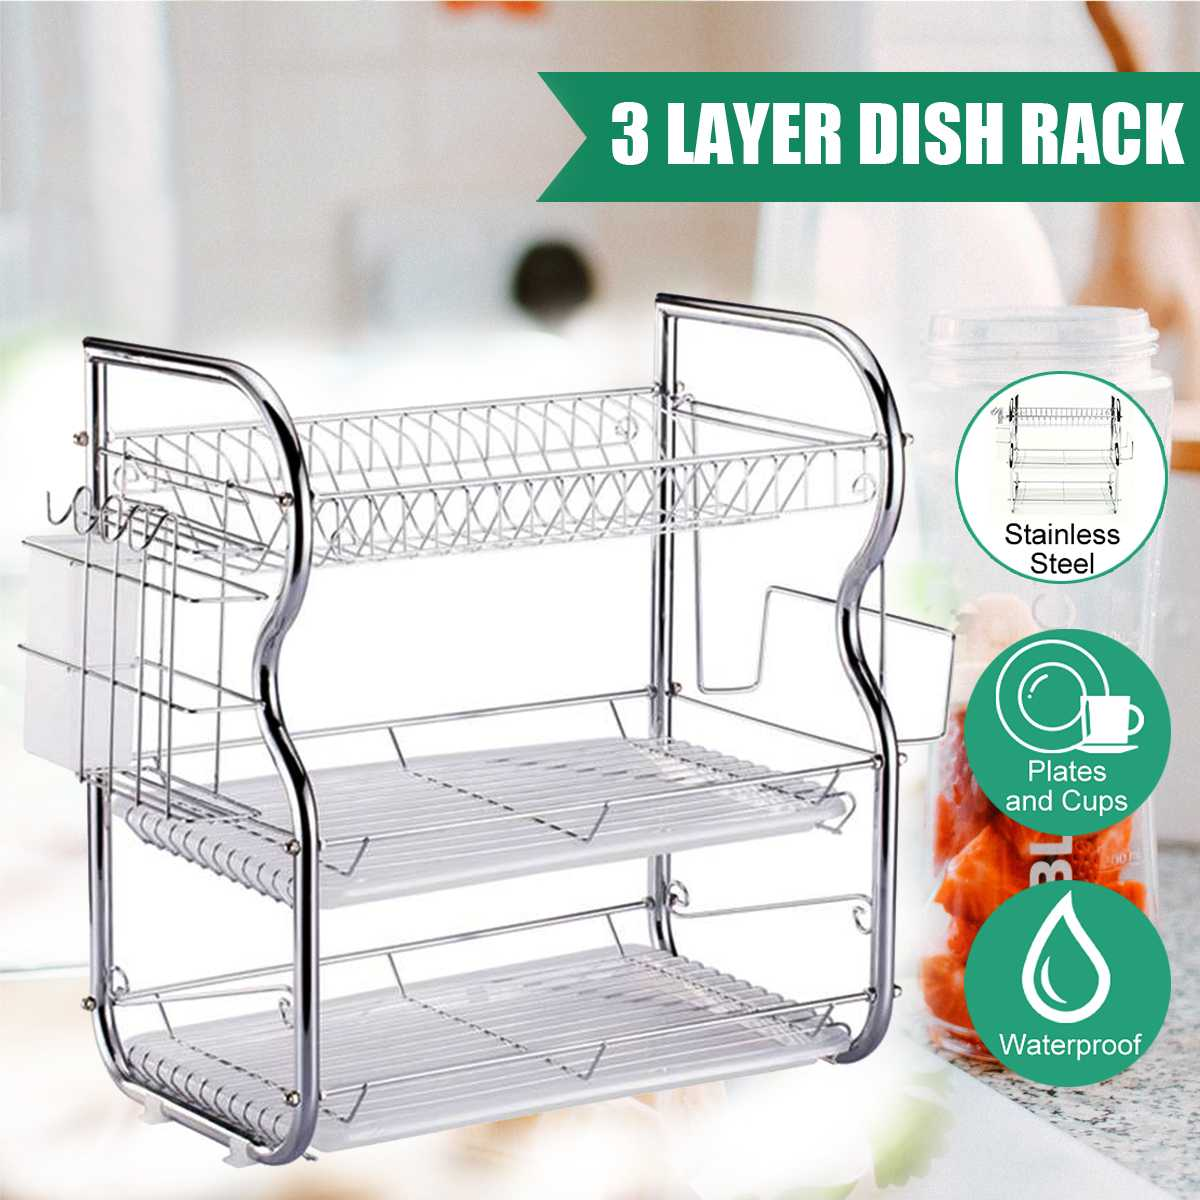 2/3 Tiers Multifunction 2 Tier Dish Drying Rack Holder Basket Stainless Steel Home Washing Kitchen Sink Dish Drainer Drying Rack